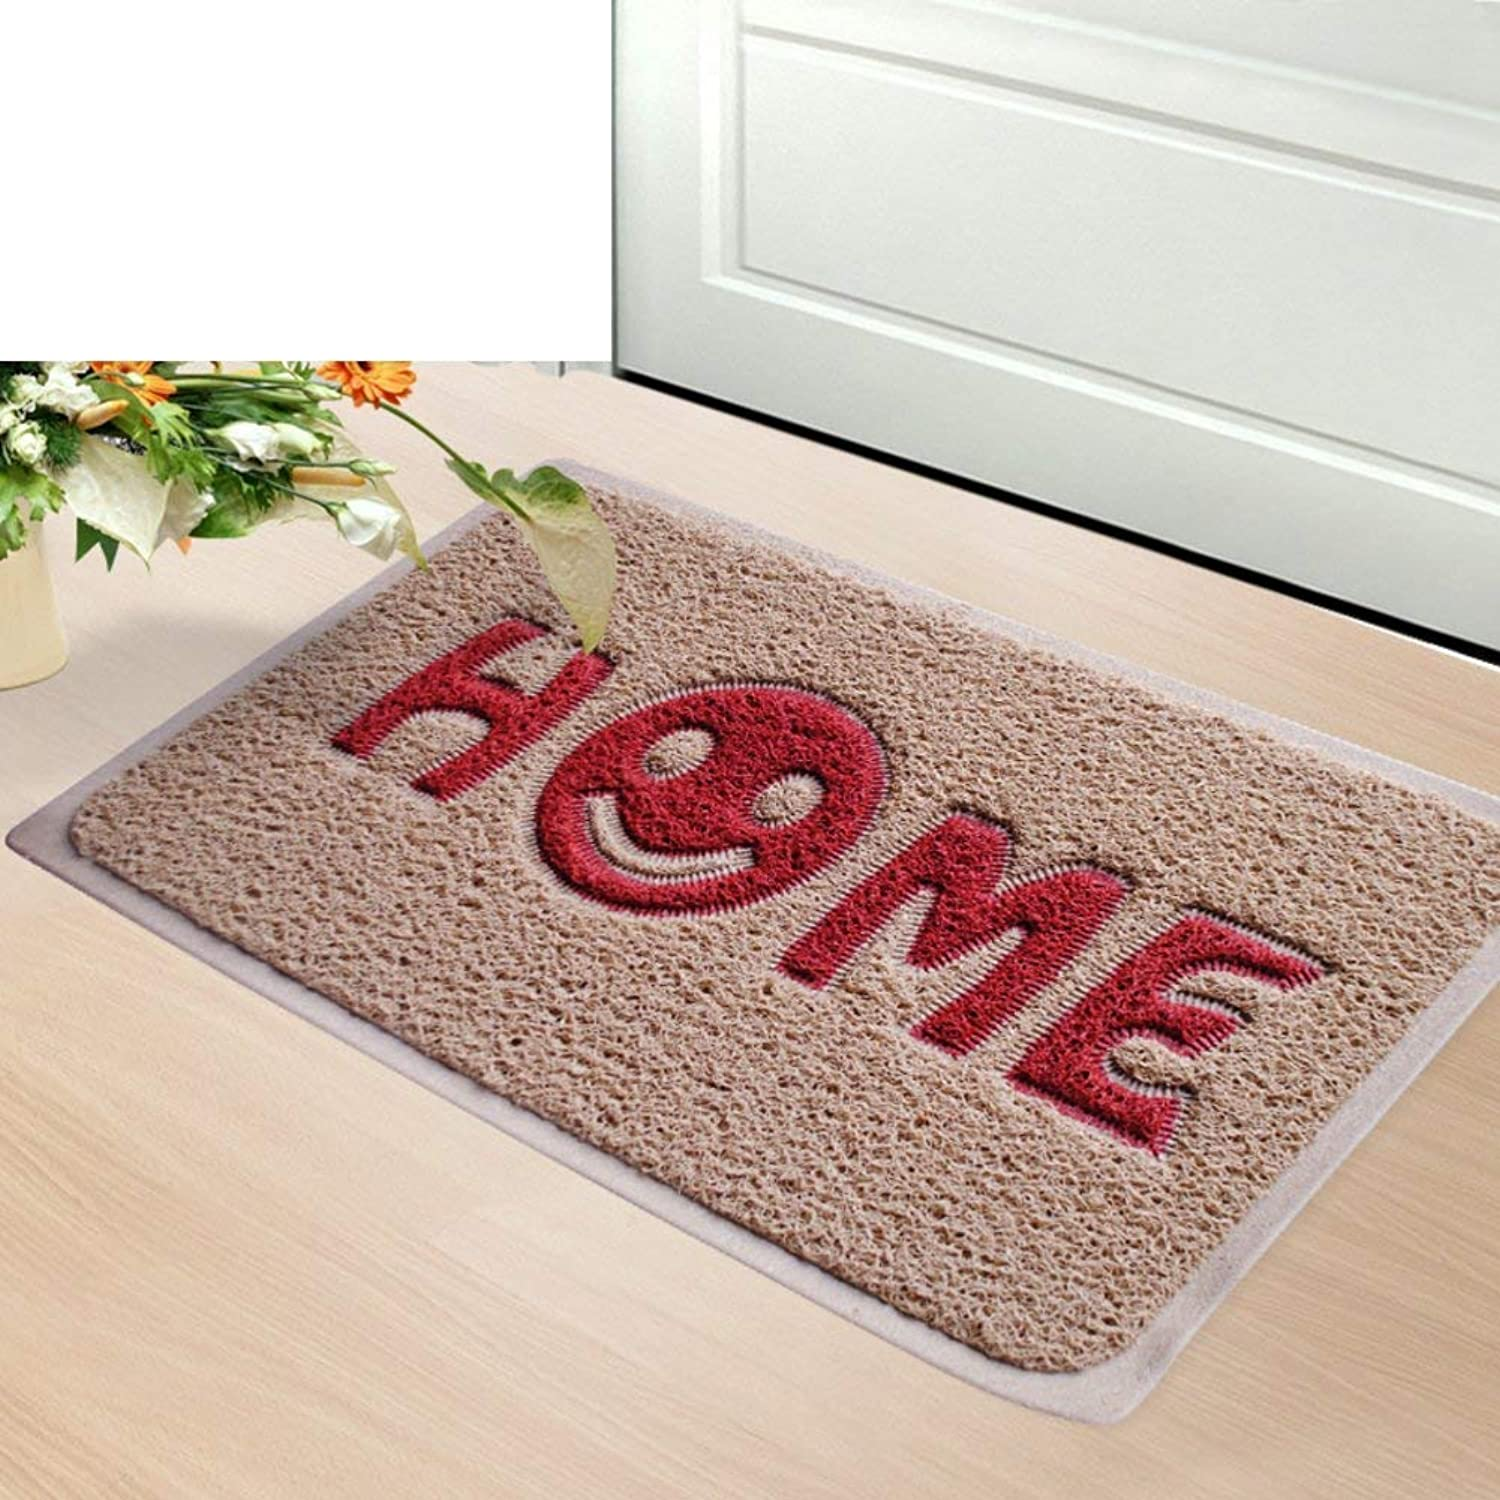 BDT Household Carpet Bathroom Mat, Entry Door Absorbent Non-Slip Mat, Long Strip Small Flower Carpet Door Mat